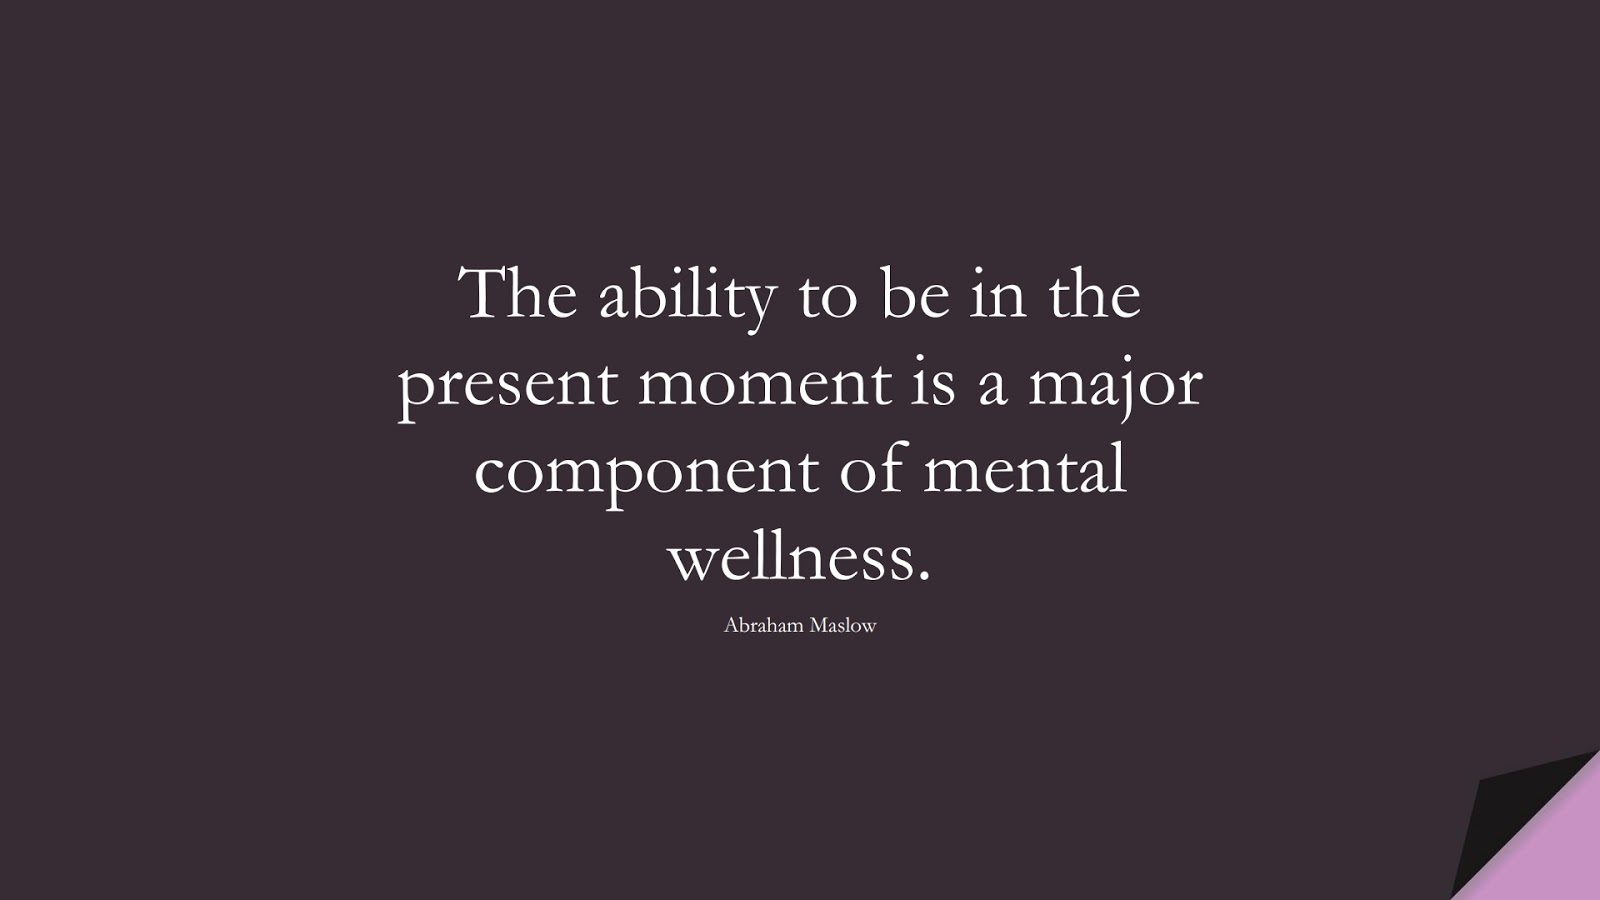 The ability to be in the present moment is a major component of mental wellness. (Abraham Maslow);  #HealthQuotes